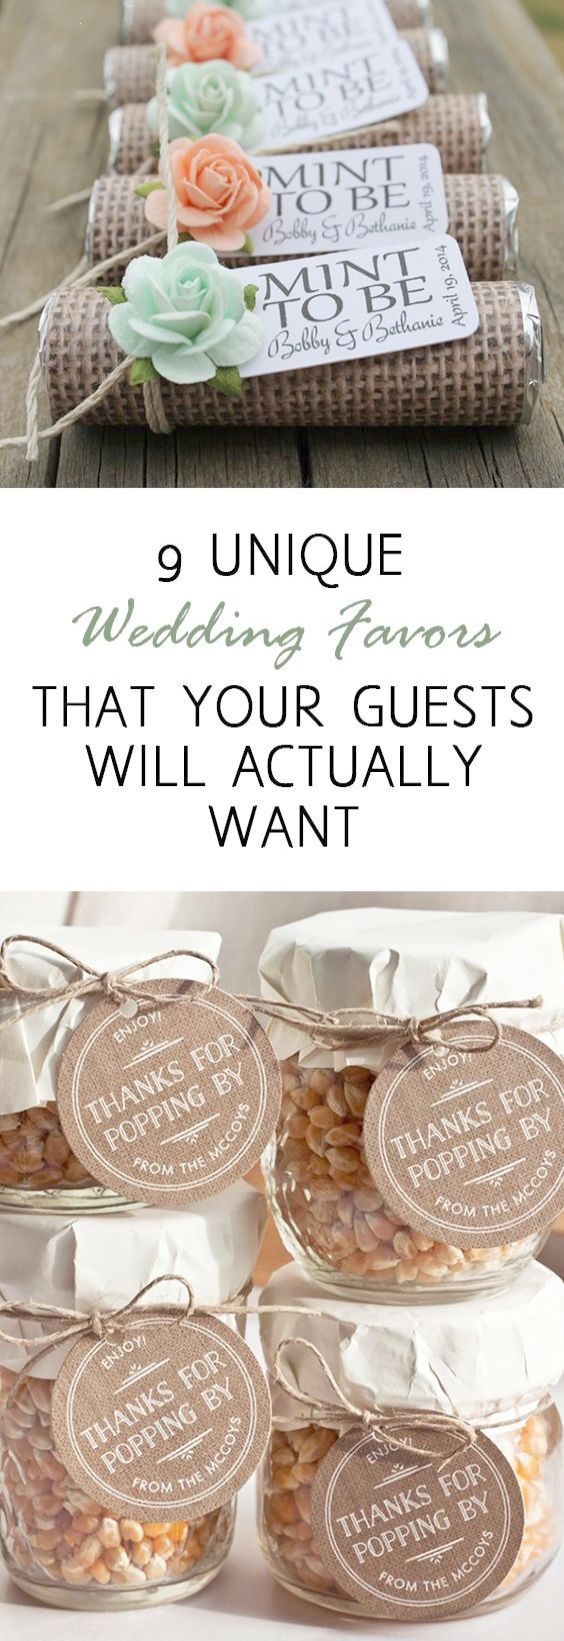 13 best Groomsmen gifts images on Pinterest   Wash bags, Canvas ...